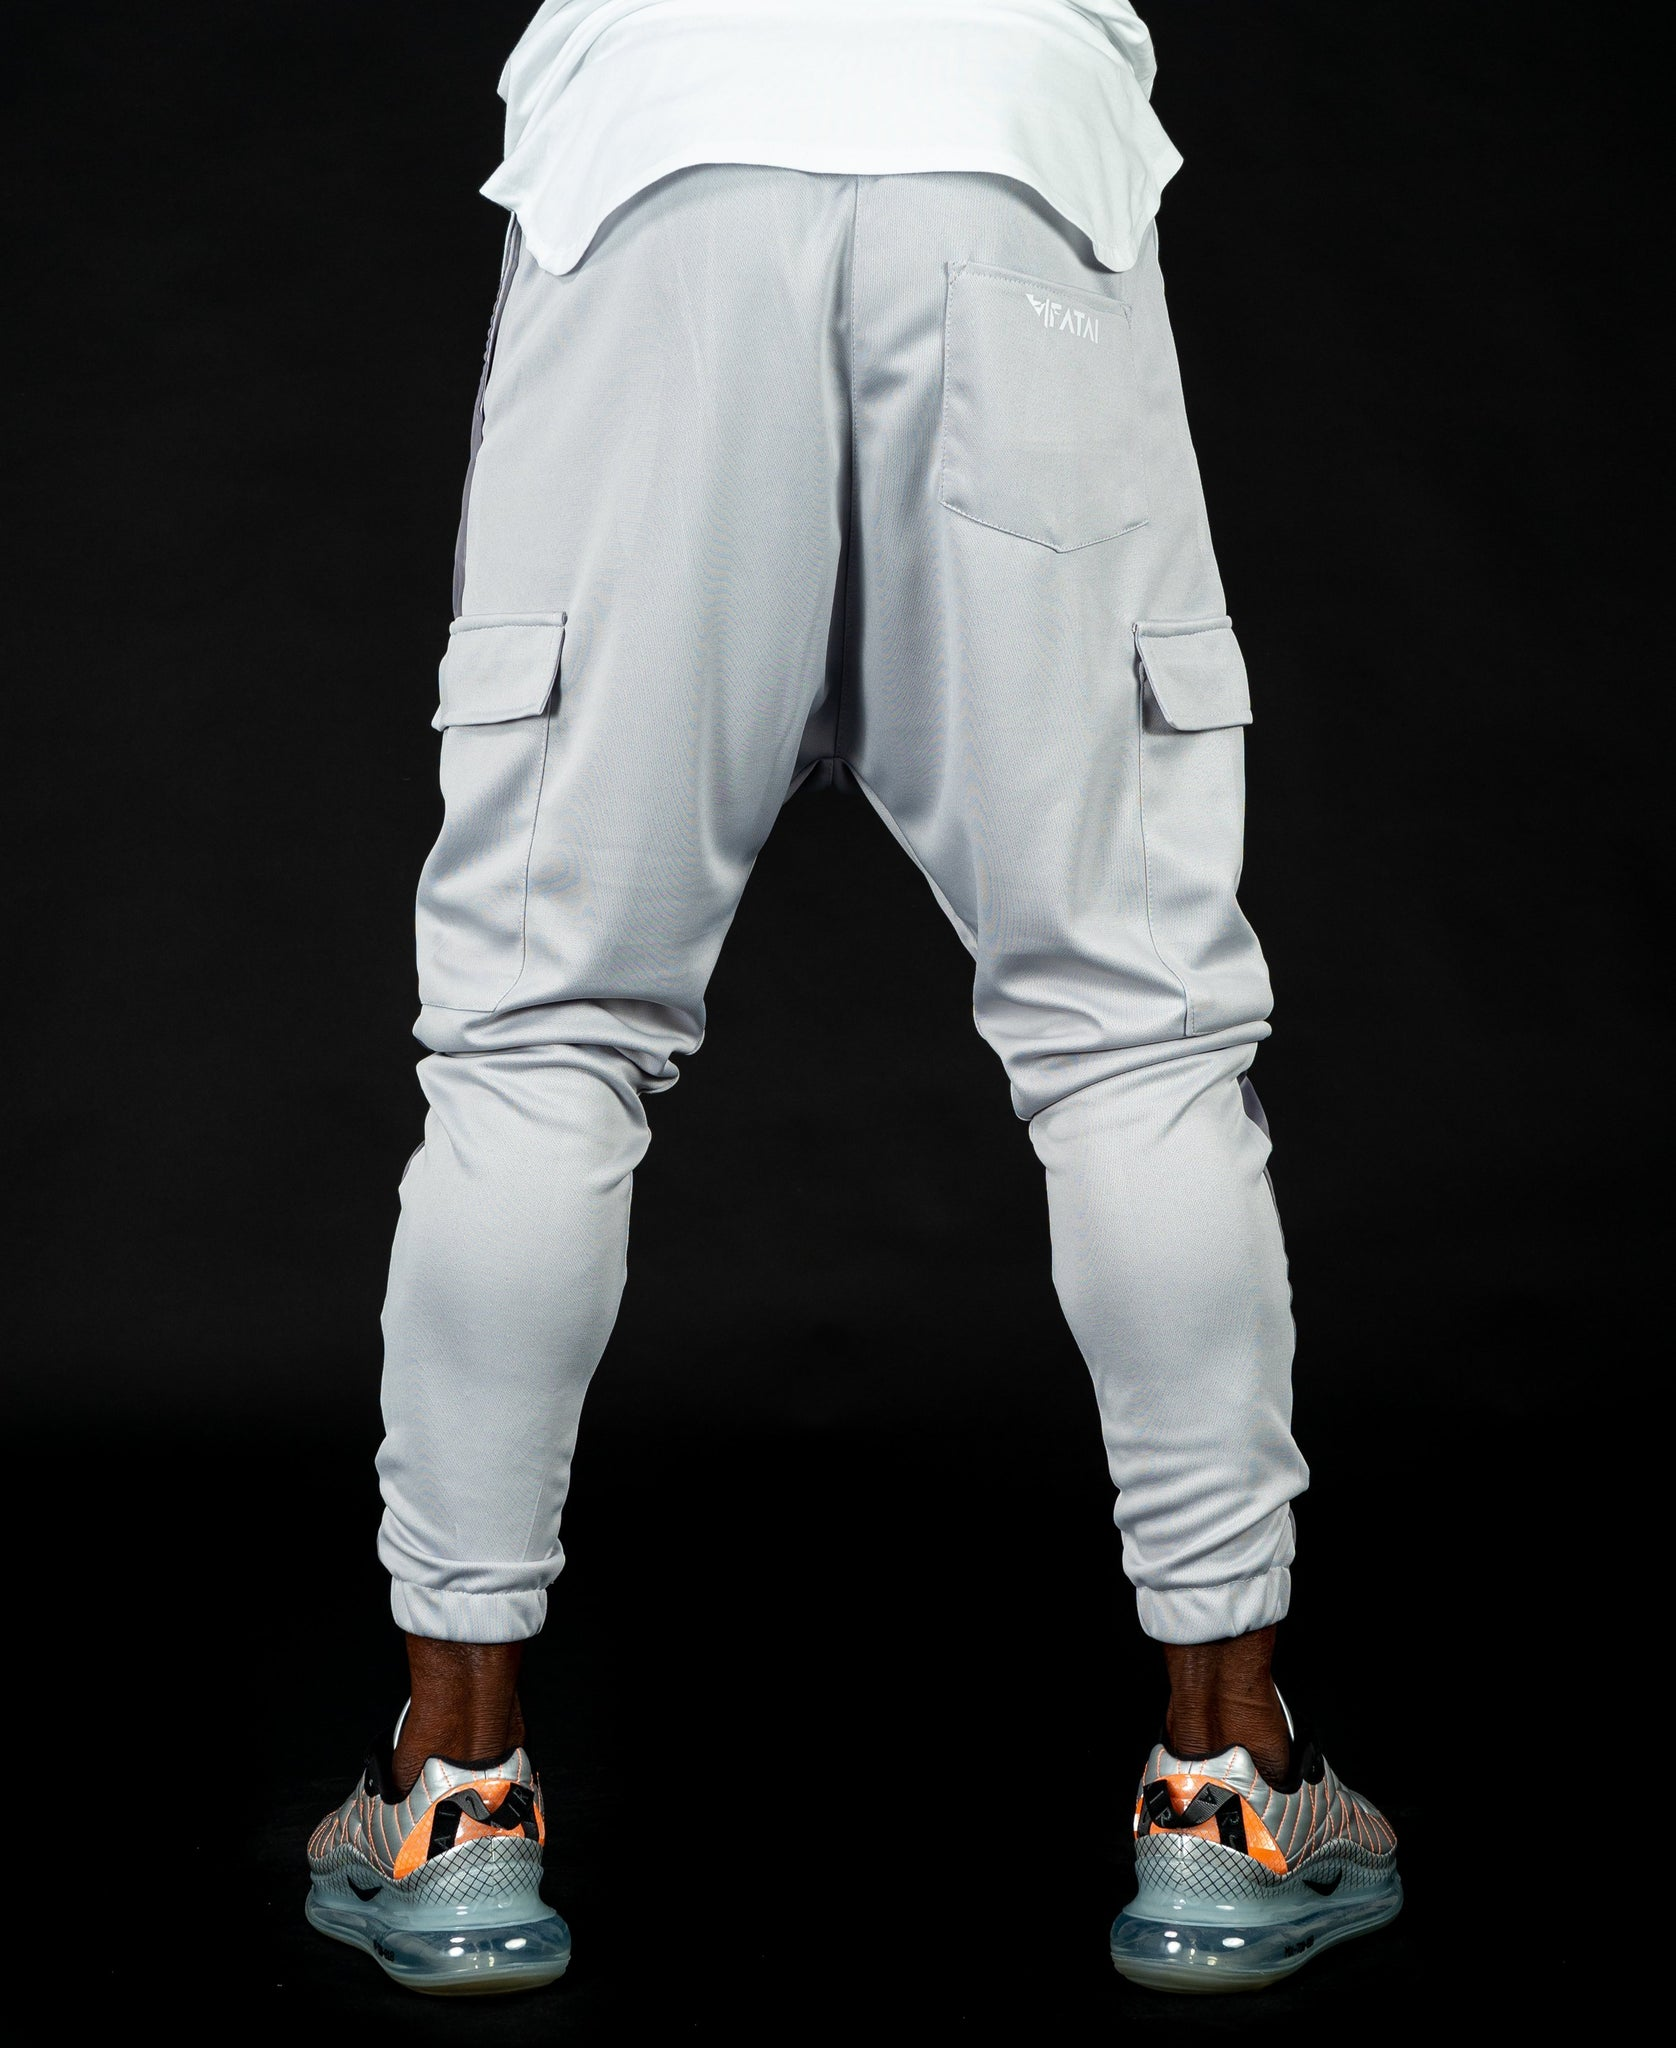 Light Grey trousers with side pocket - Fatai Style